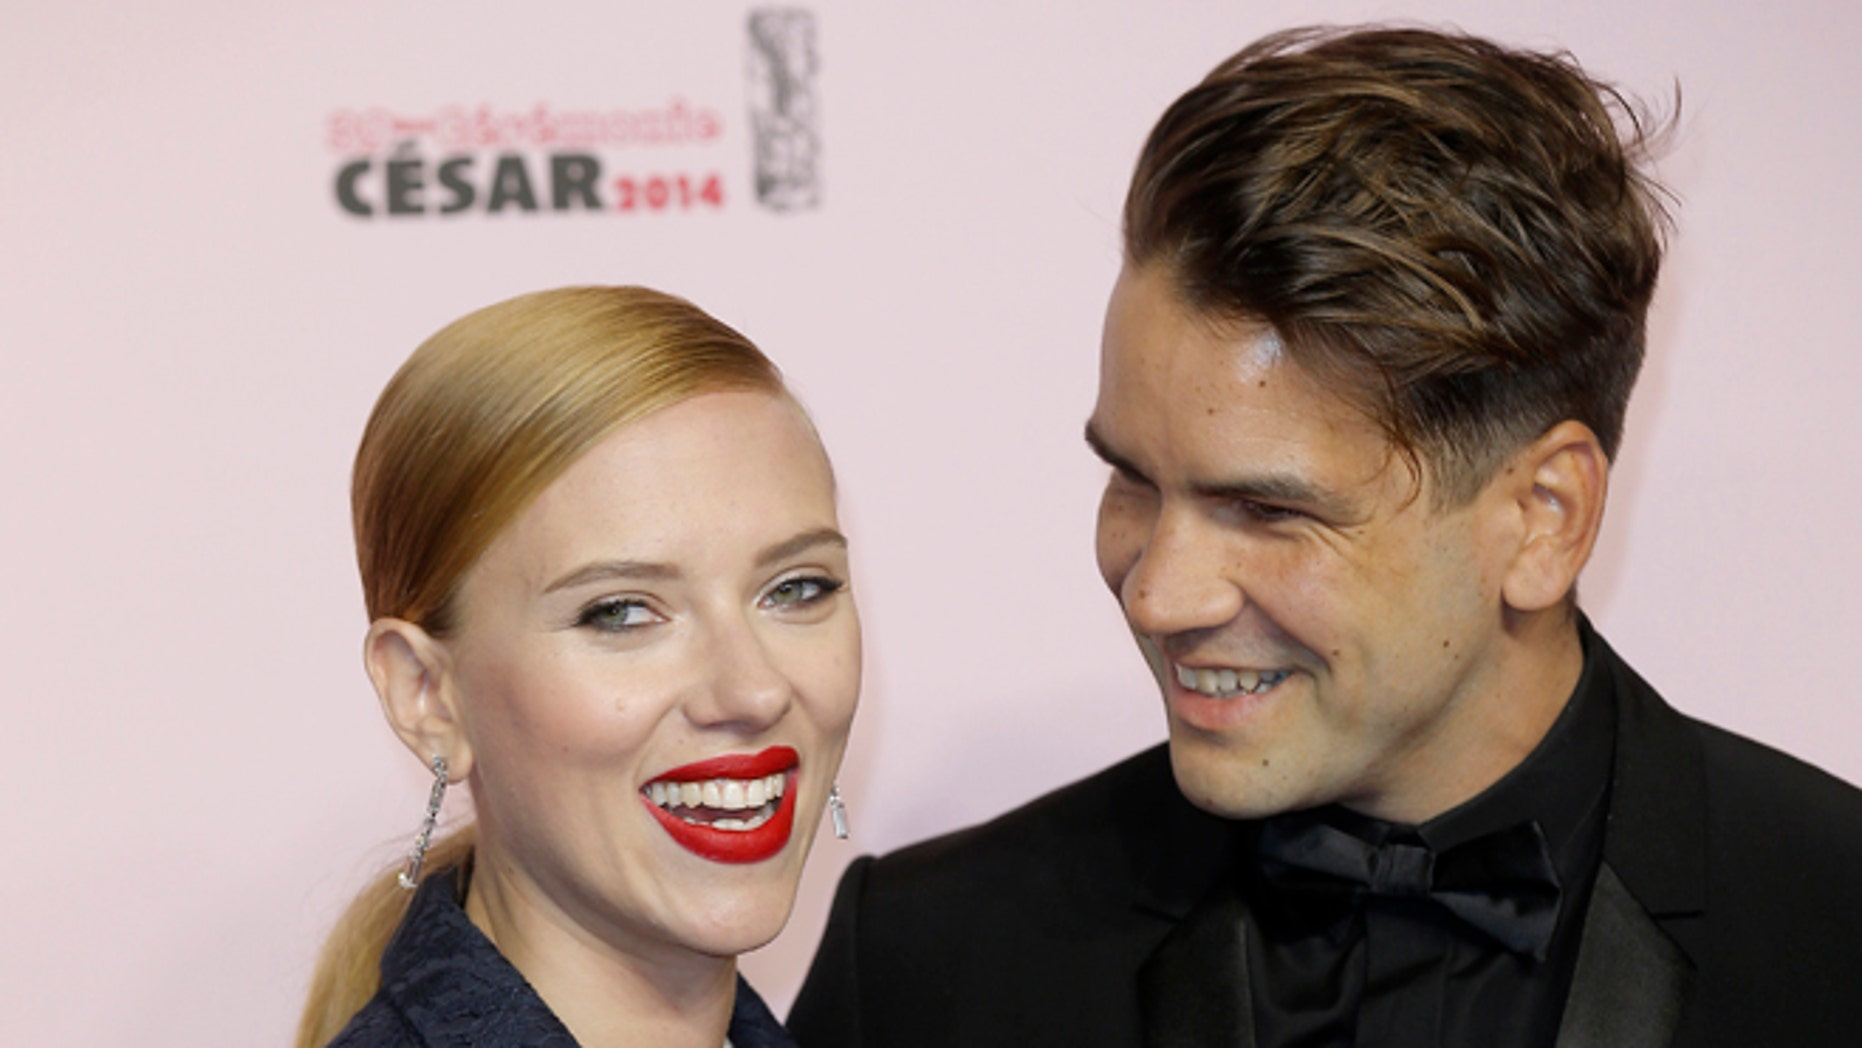 Feb. 28, 2014: Actress Scarlett Johansson, left, and her partner Romain Dauriac arrive at the 39th French Cesar Awards Ceremony, in Paris.